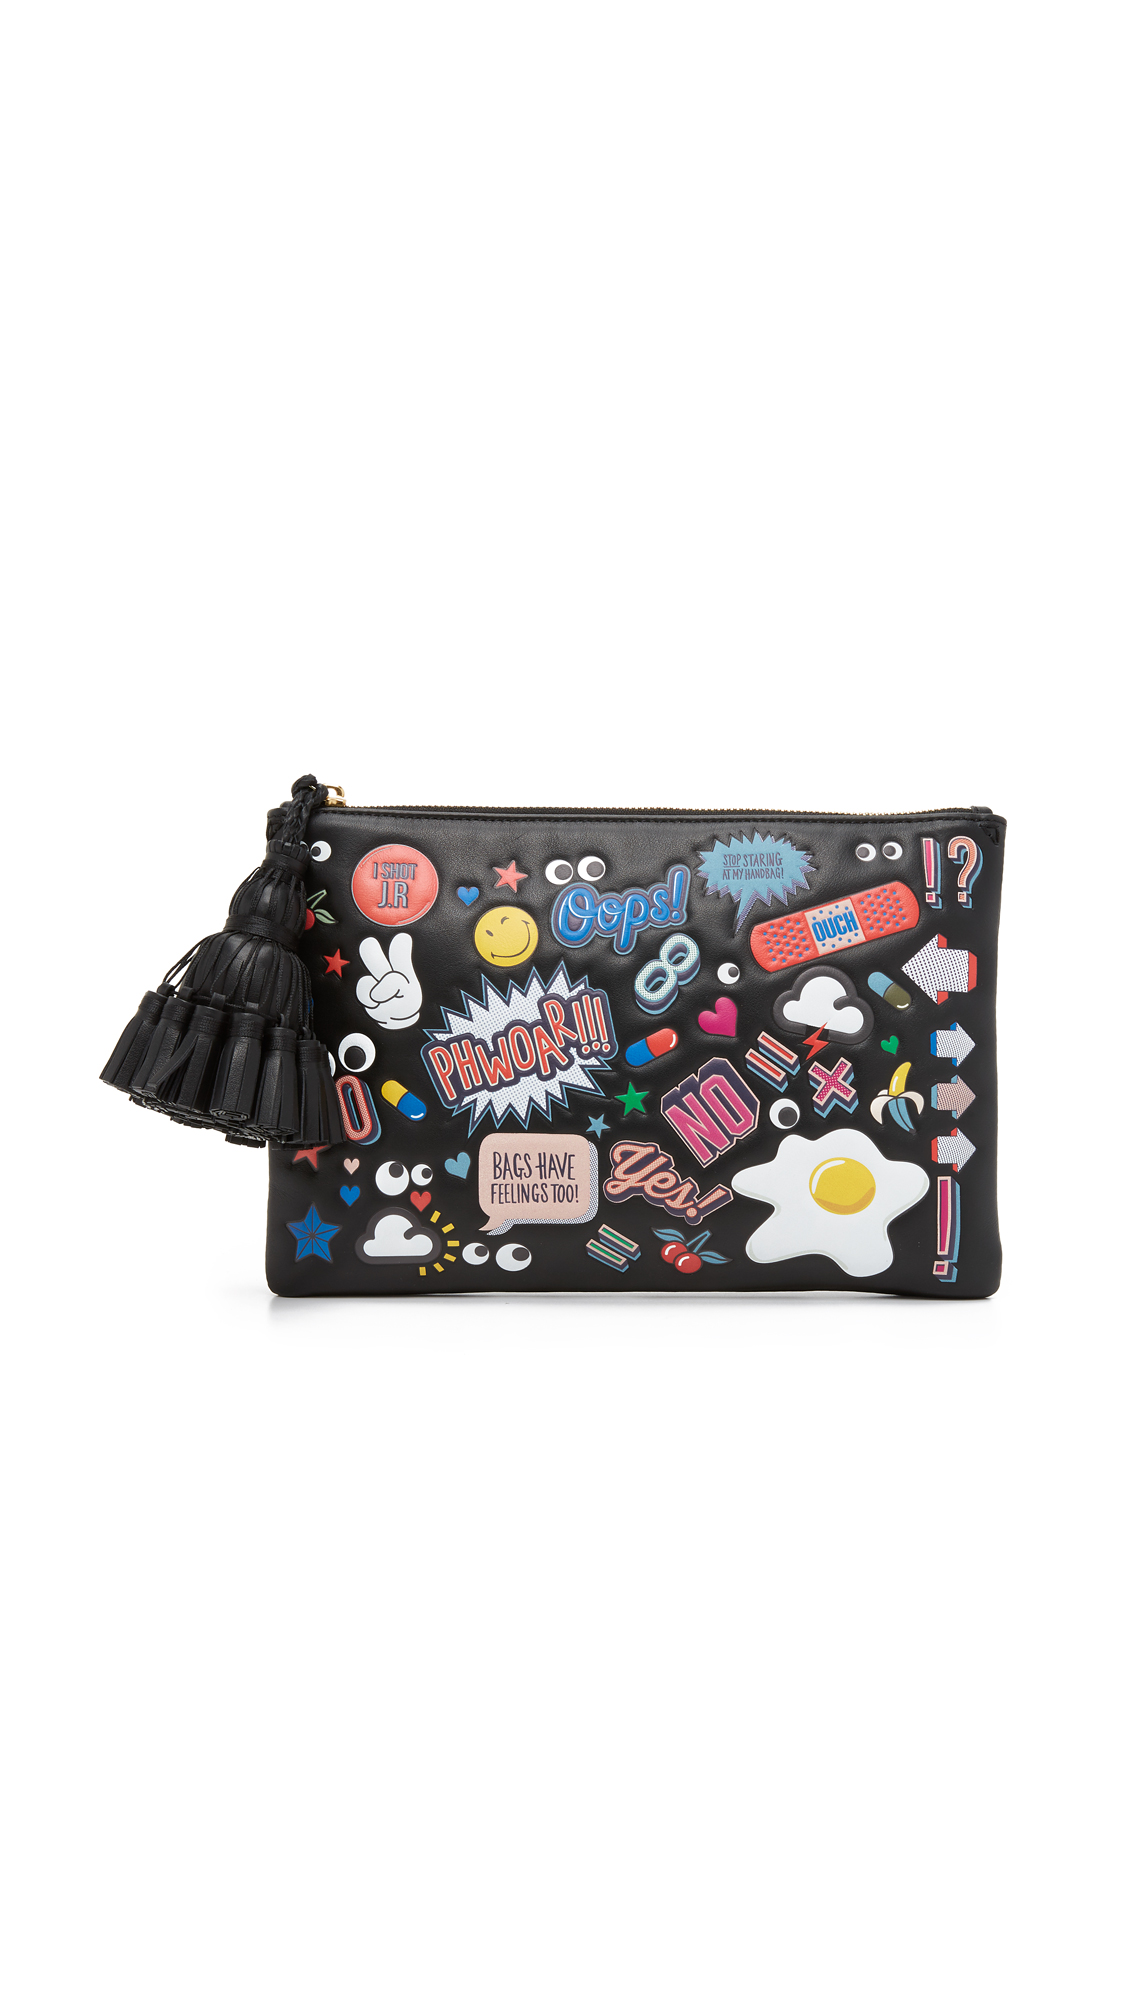 Playful, embossed graphics lend a touch of bold charm to this leather Anya Hindmarch clutch. An oversized, embroidered tassel hangs from the top zip, providing a unique finish. Suede interior with a zip pocket and 3 card